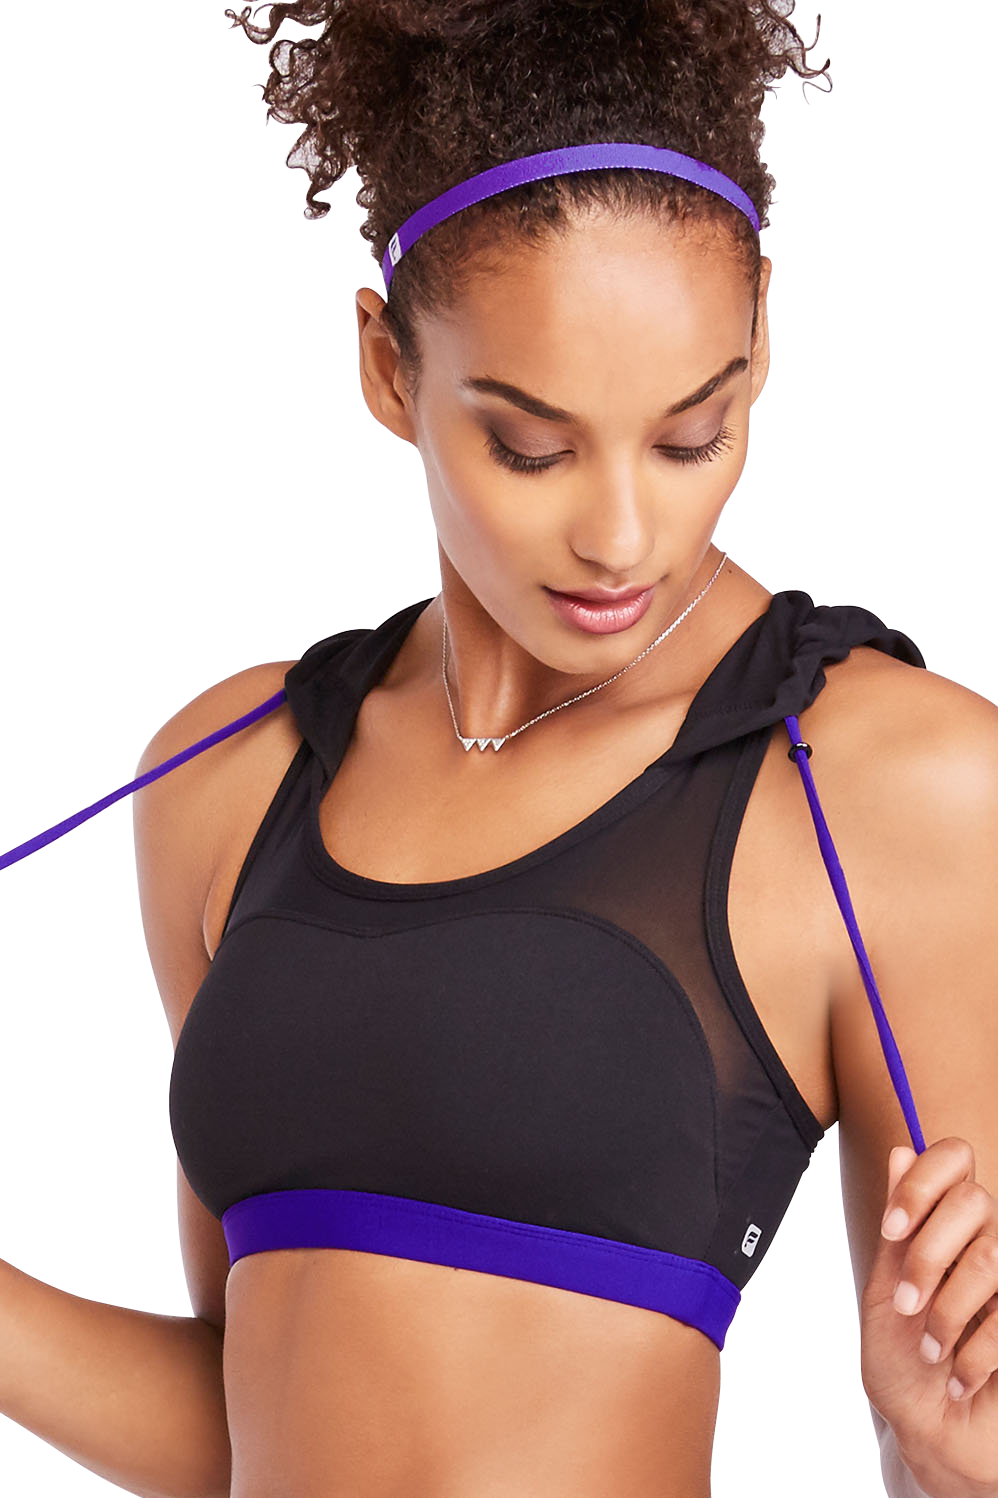 642af70303 This sports bra features all the technology you ve come to love. Enjoy sweat-fighting  fabric